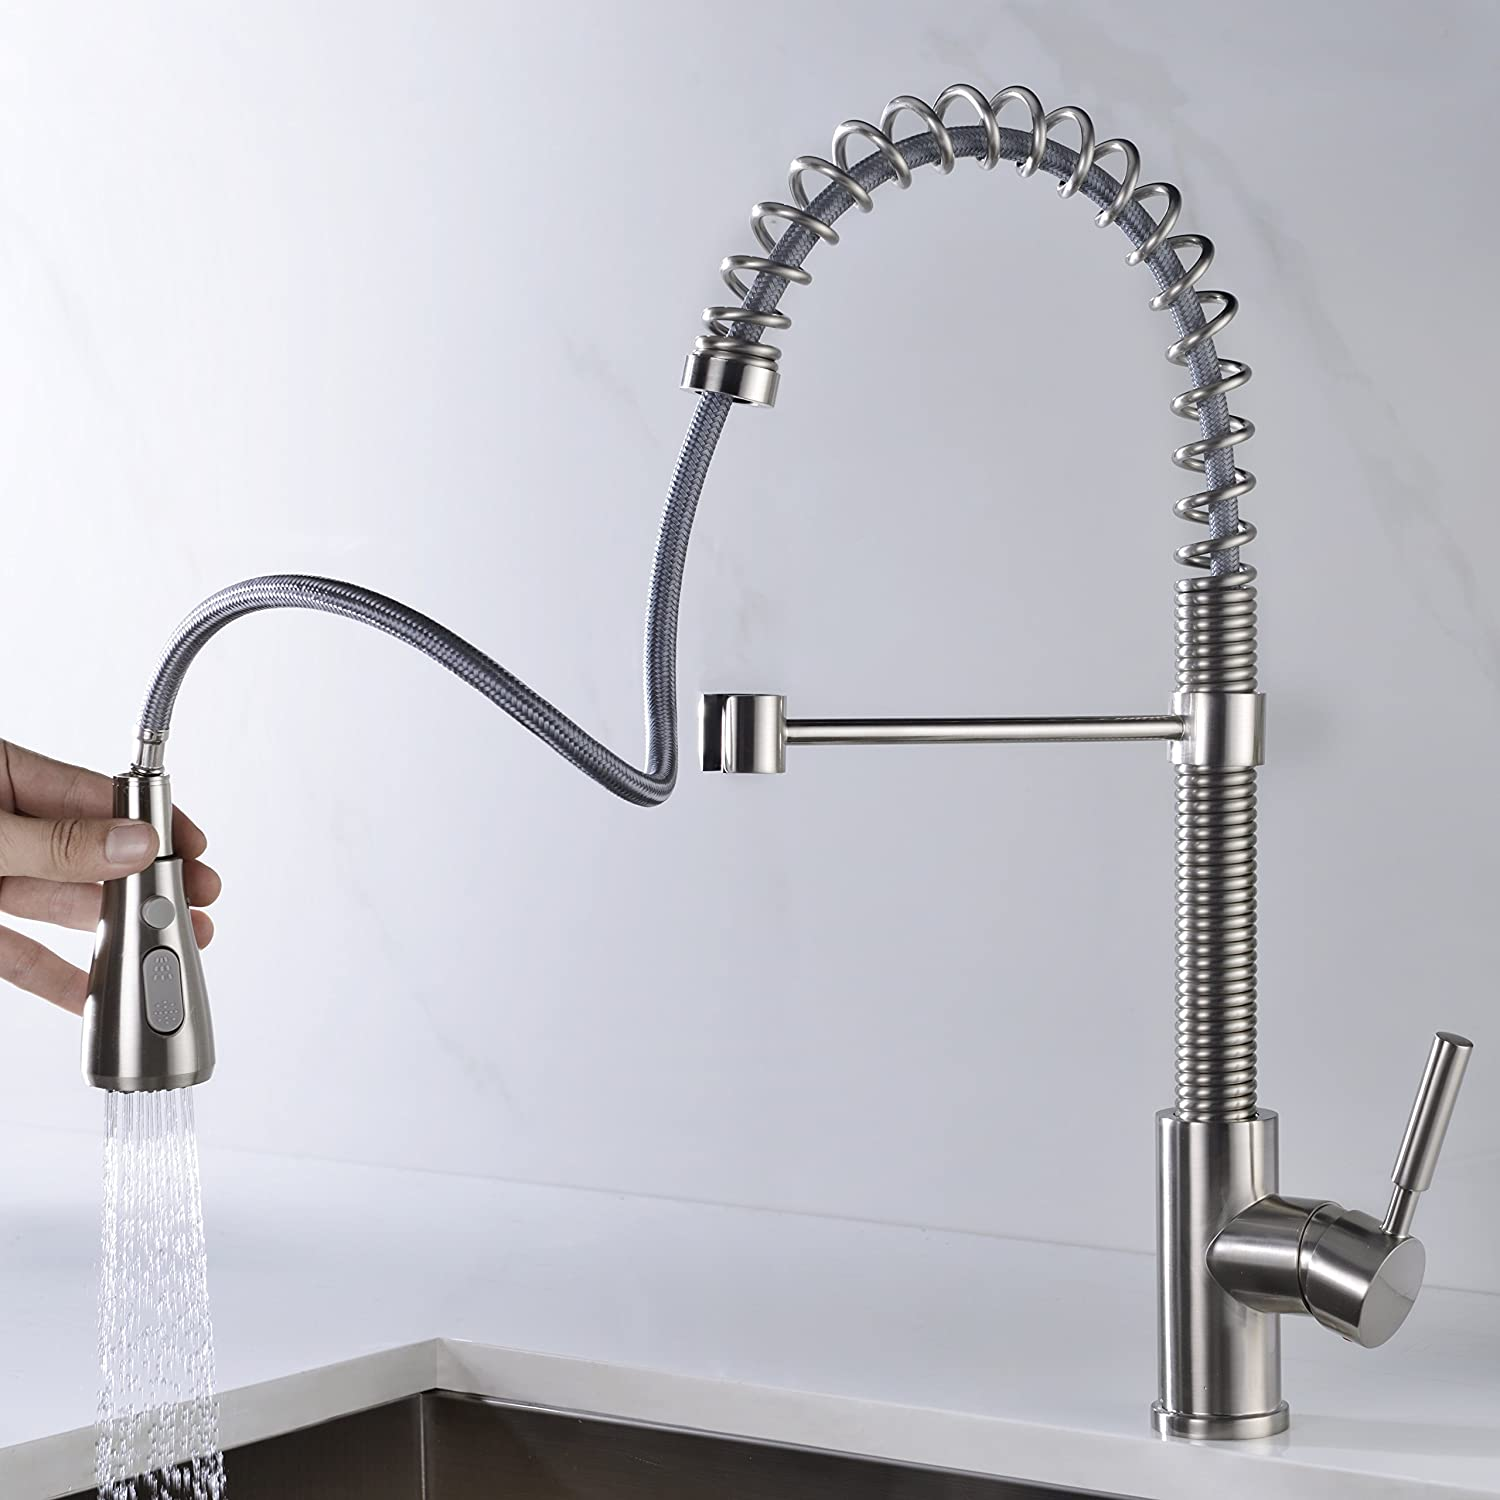 Kitchen Faucet Brushed Nickel with Pull Down Sprayer Delle Rosa Durable and Sturdy Single Handle Pre-rinse Spring Kitchen Sink Faucet